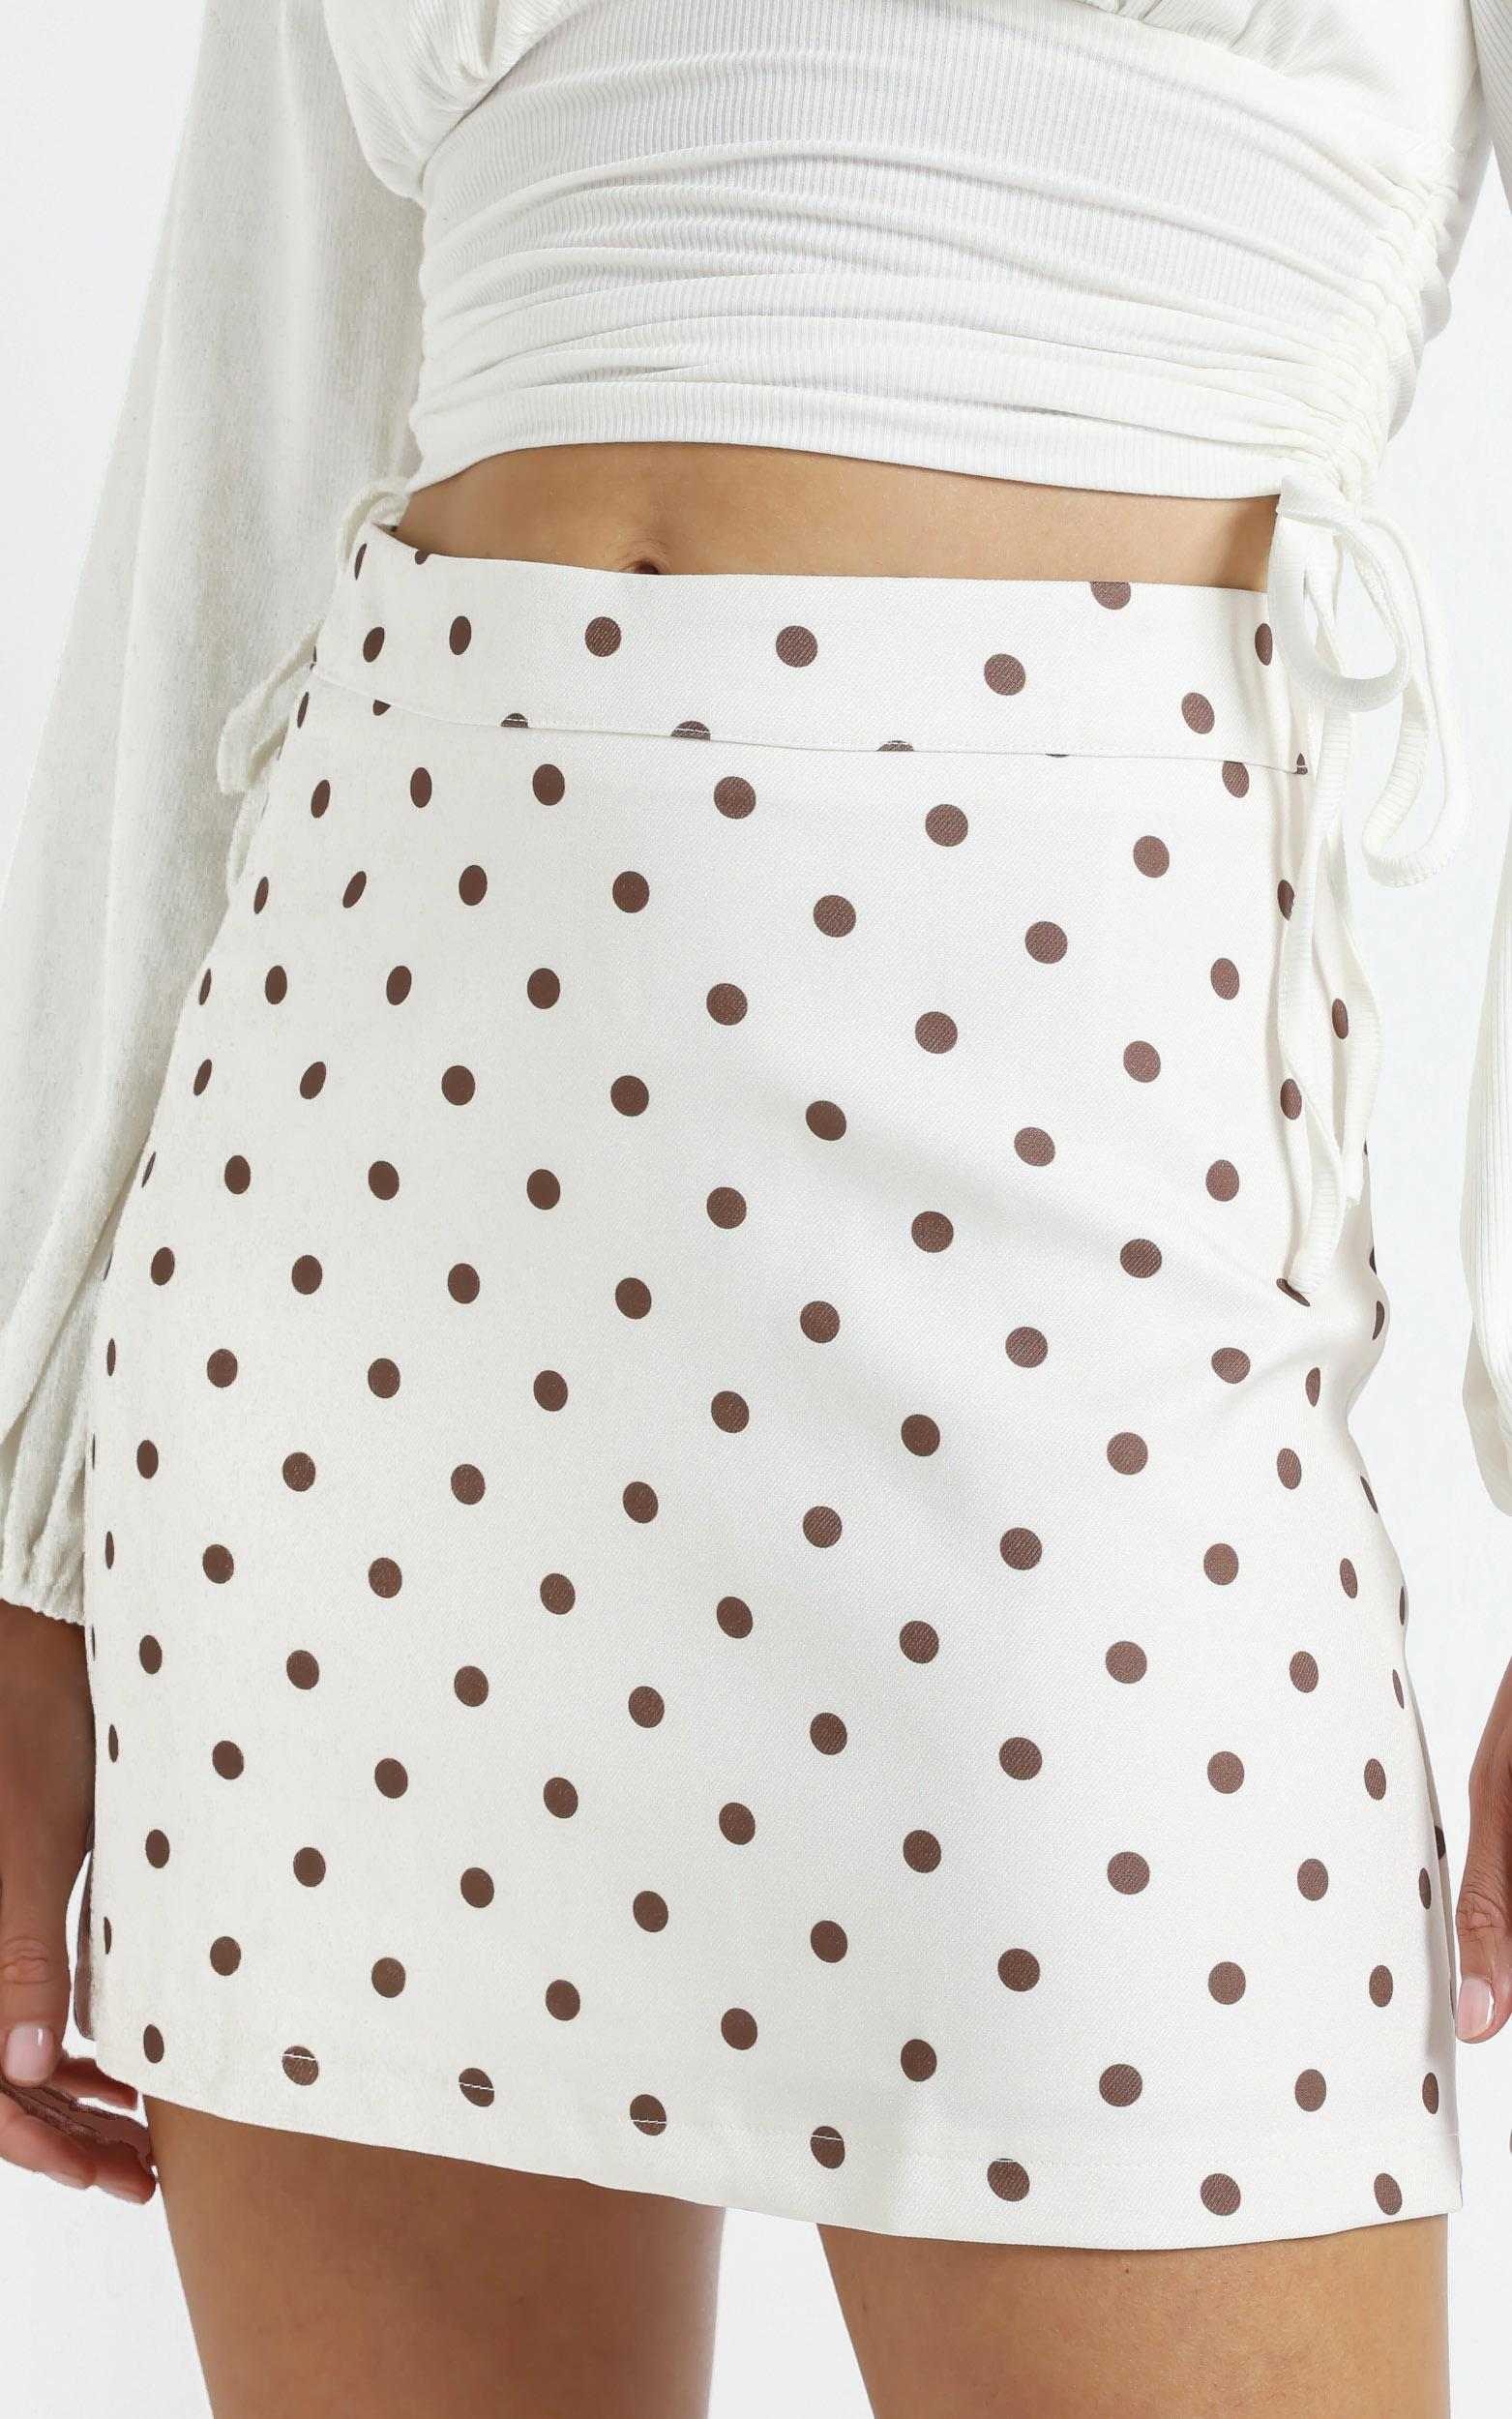 Lavo Skirt in Spot - 14 (XL), White, hi-res image number null